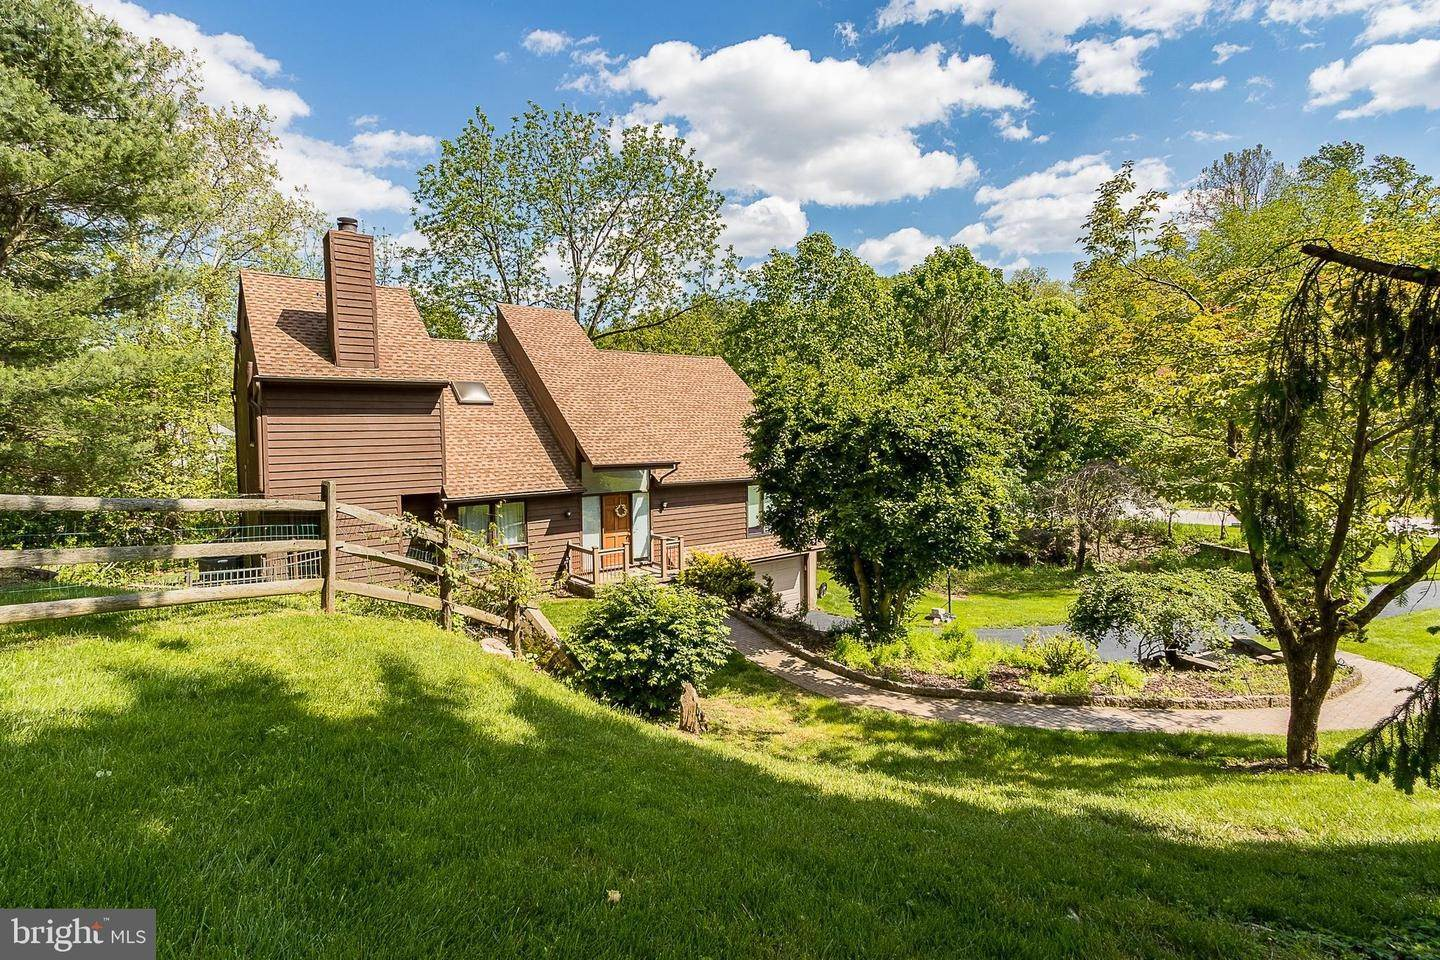 Detached House for Sale at 943 HUNT Road Radnor, Pennsylvania 19008 United States